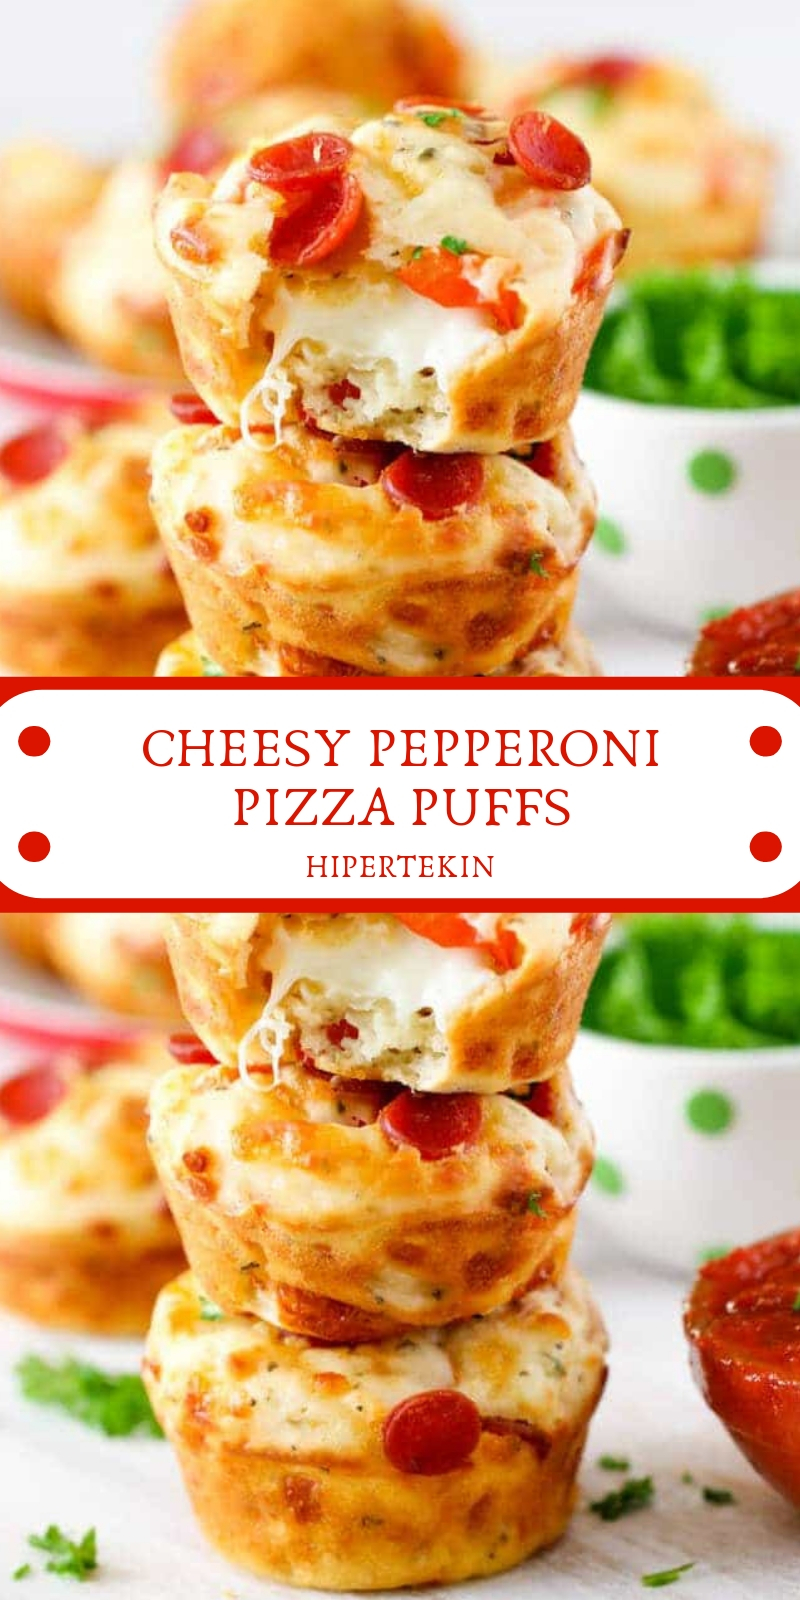 CHEESY PEPPERONI PIZZA PUFFS